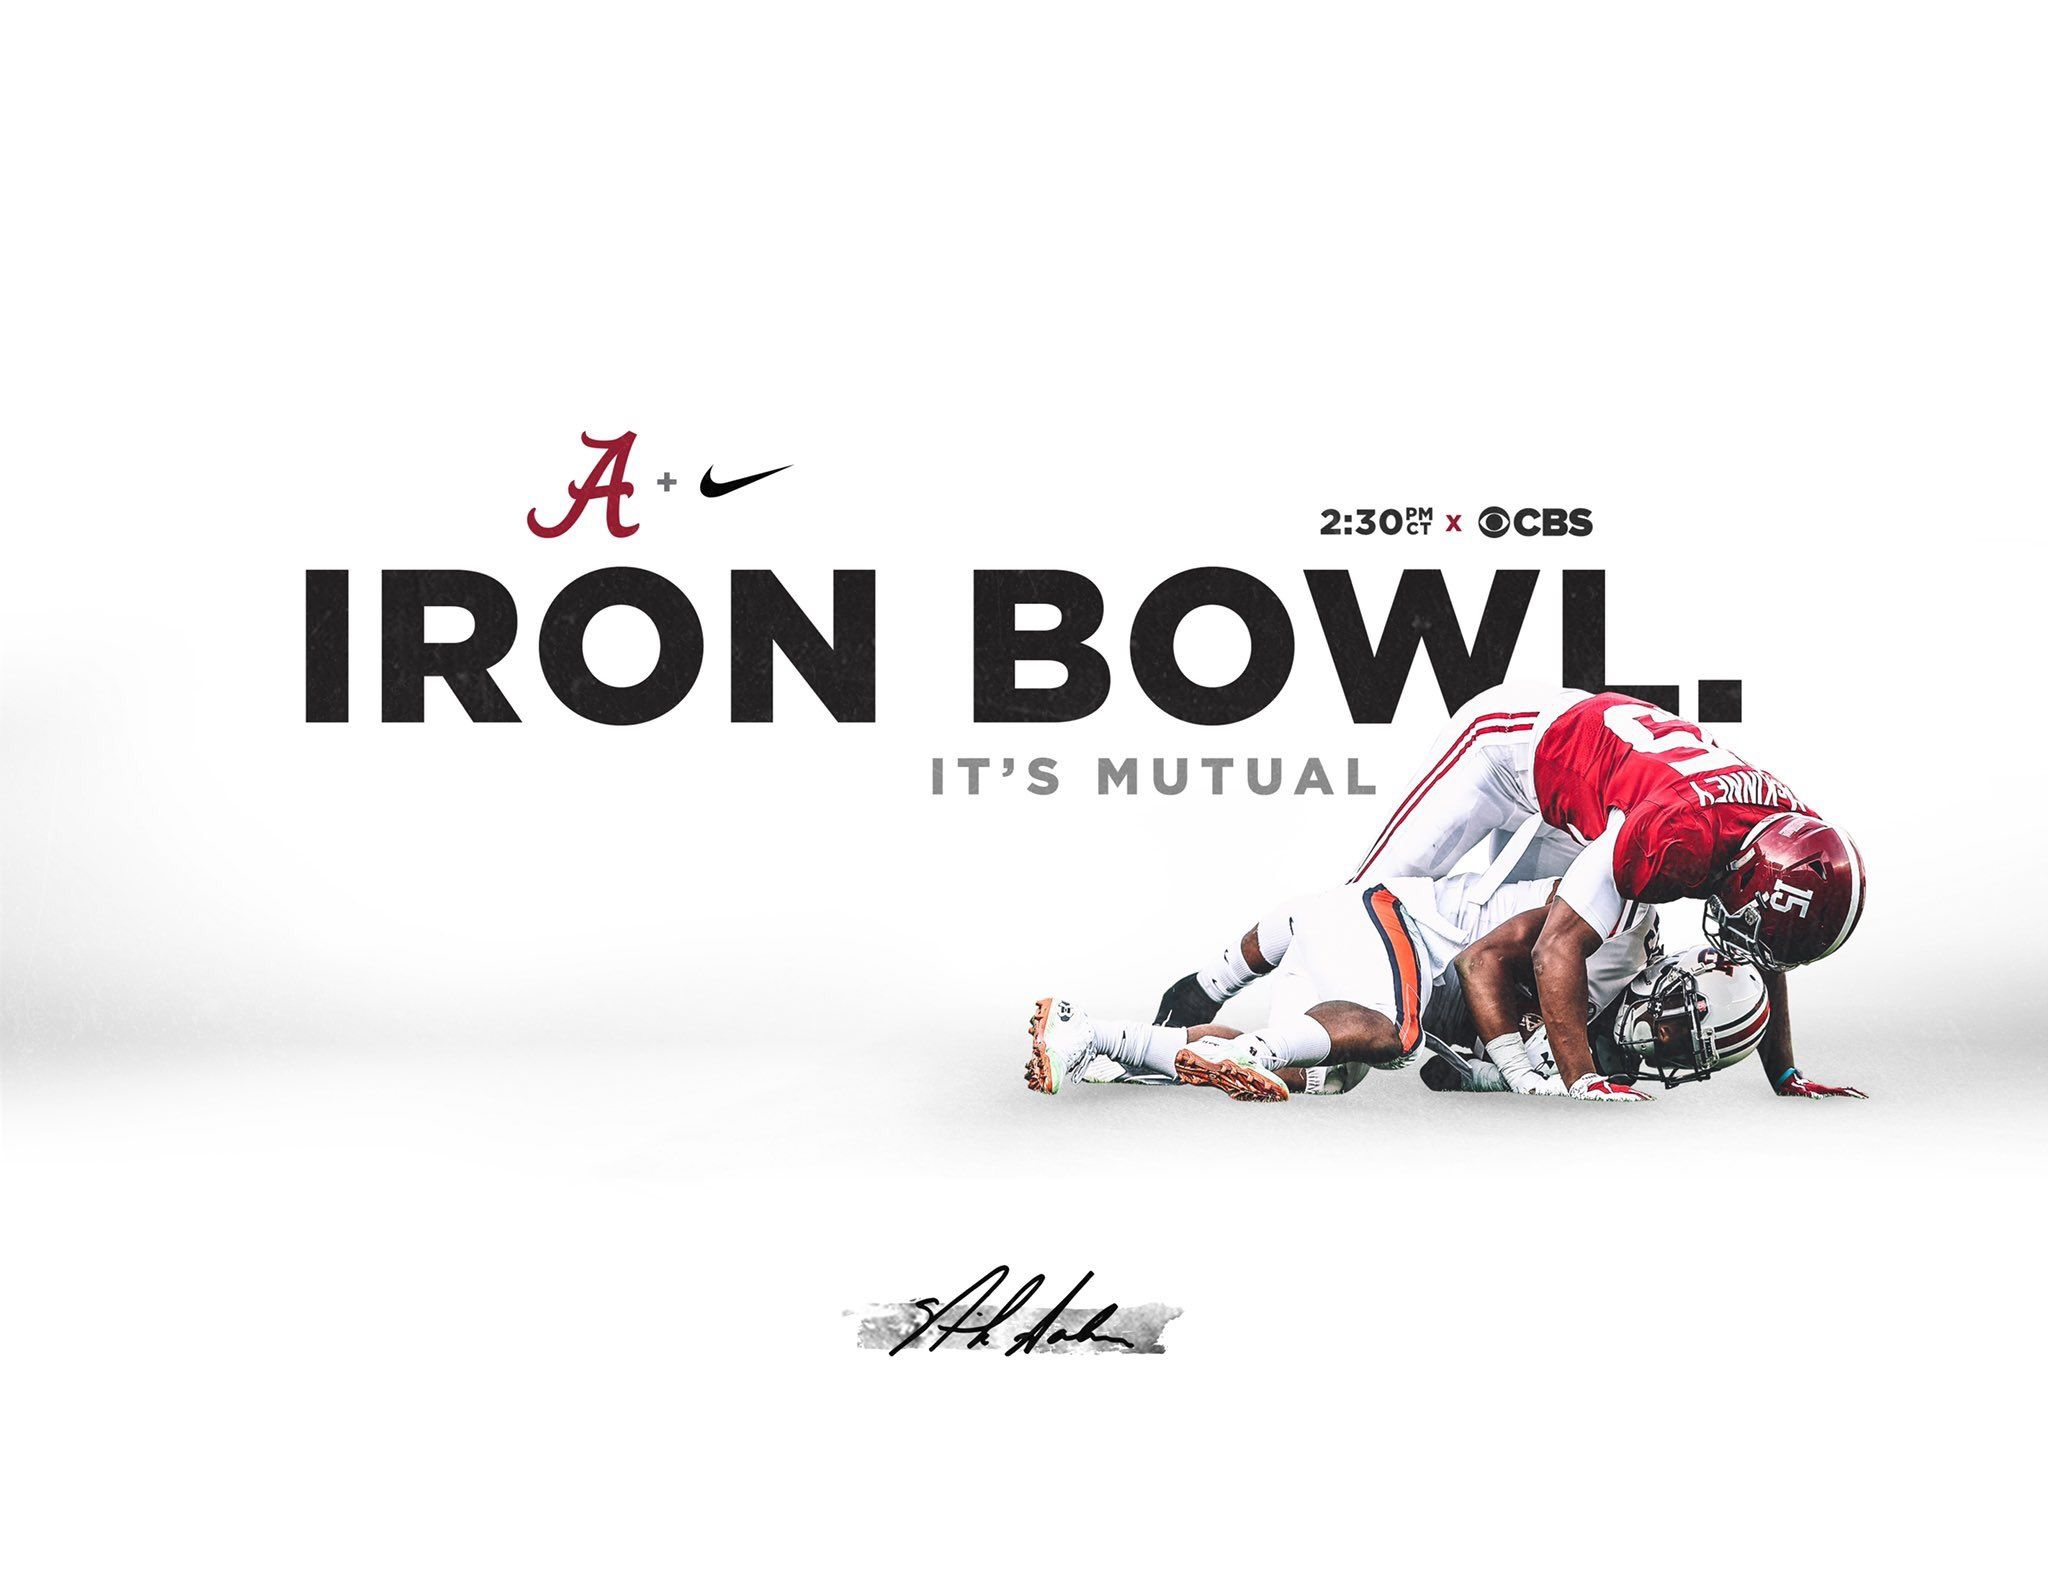 Trenches On Twitter Alabama Football Iron Bowl Sports Design Inspiration